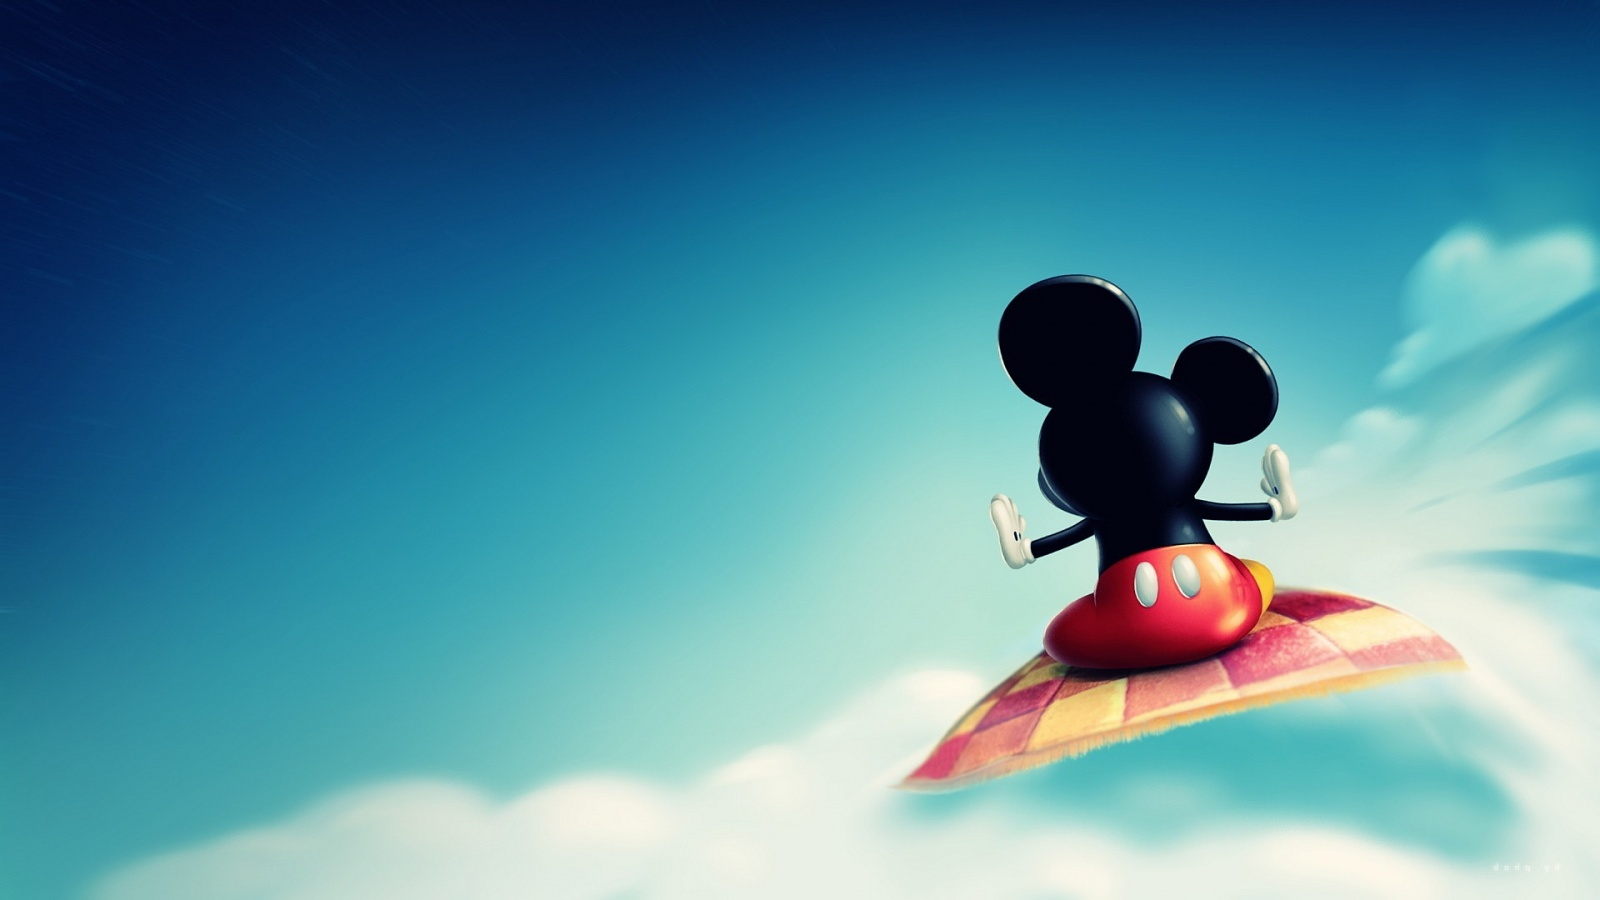 48 Mickey Mouse Iphone 6 Wallpaper On Wallpapersafari